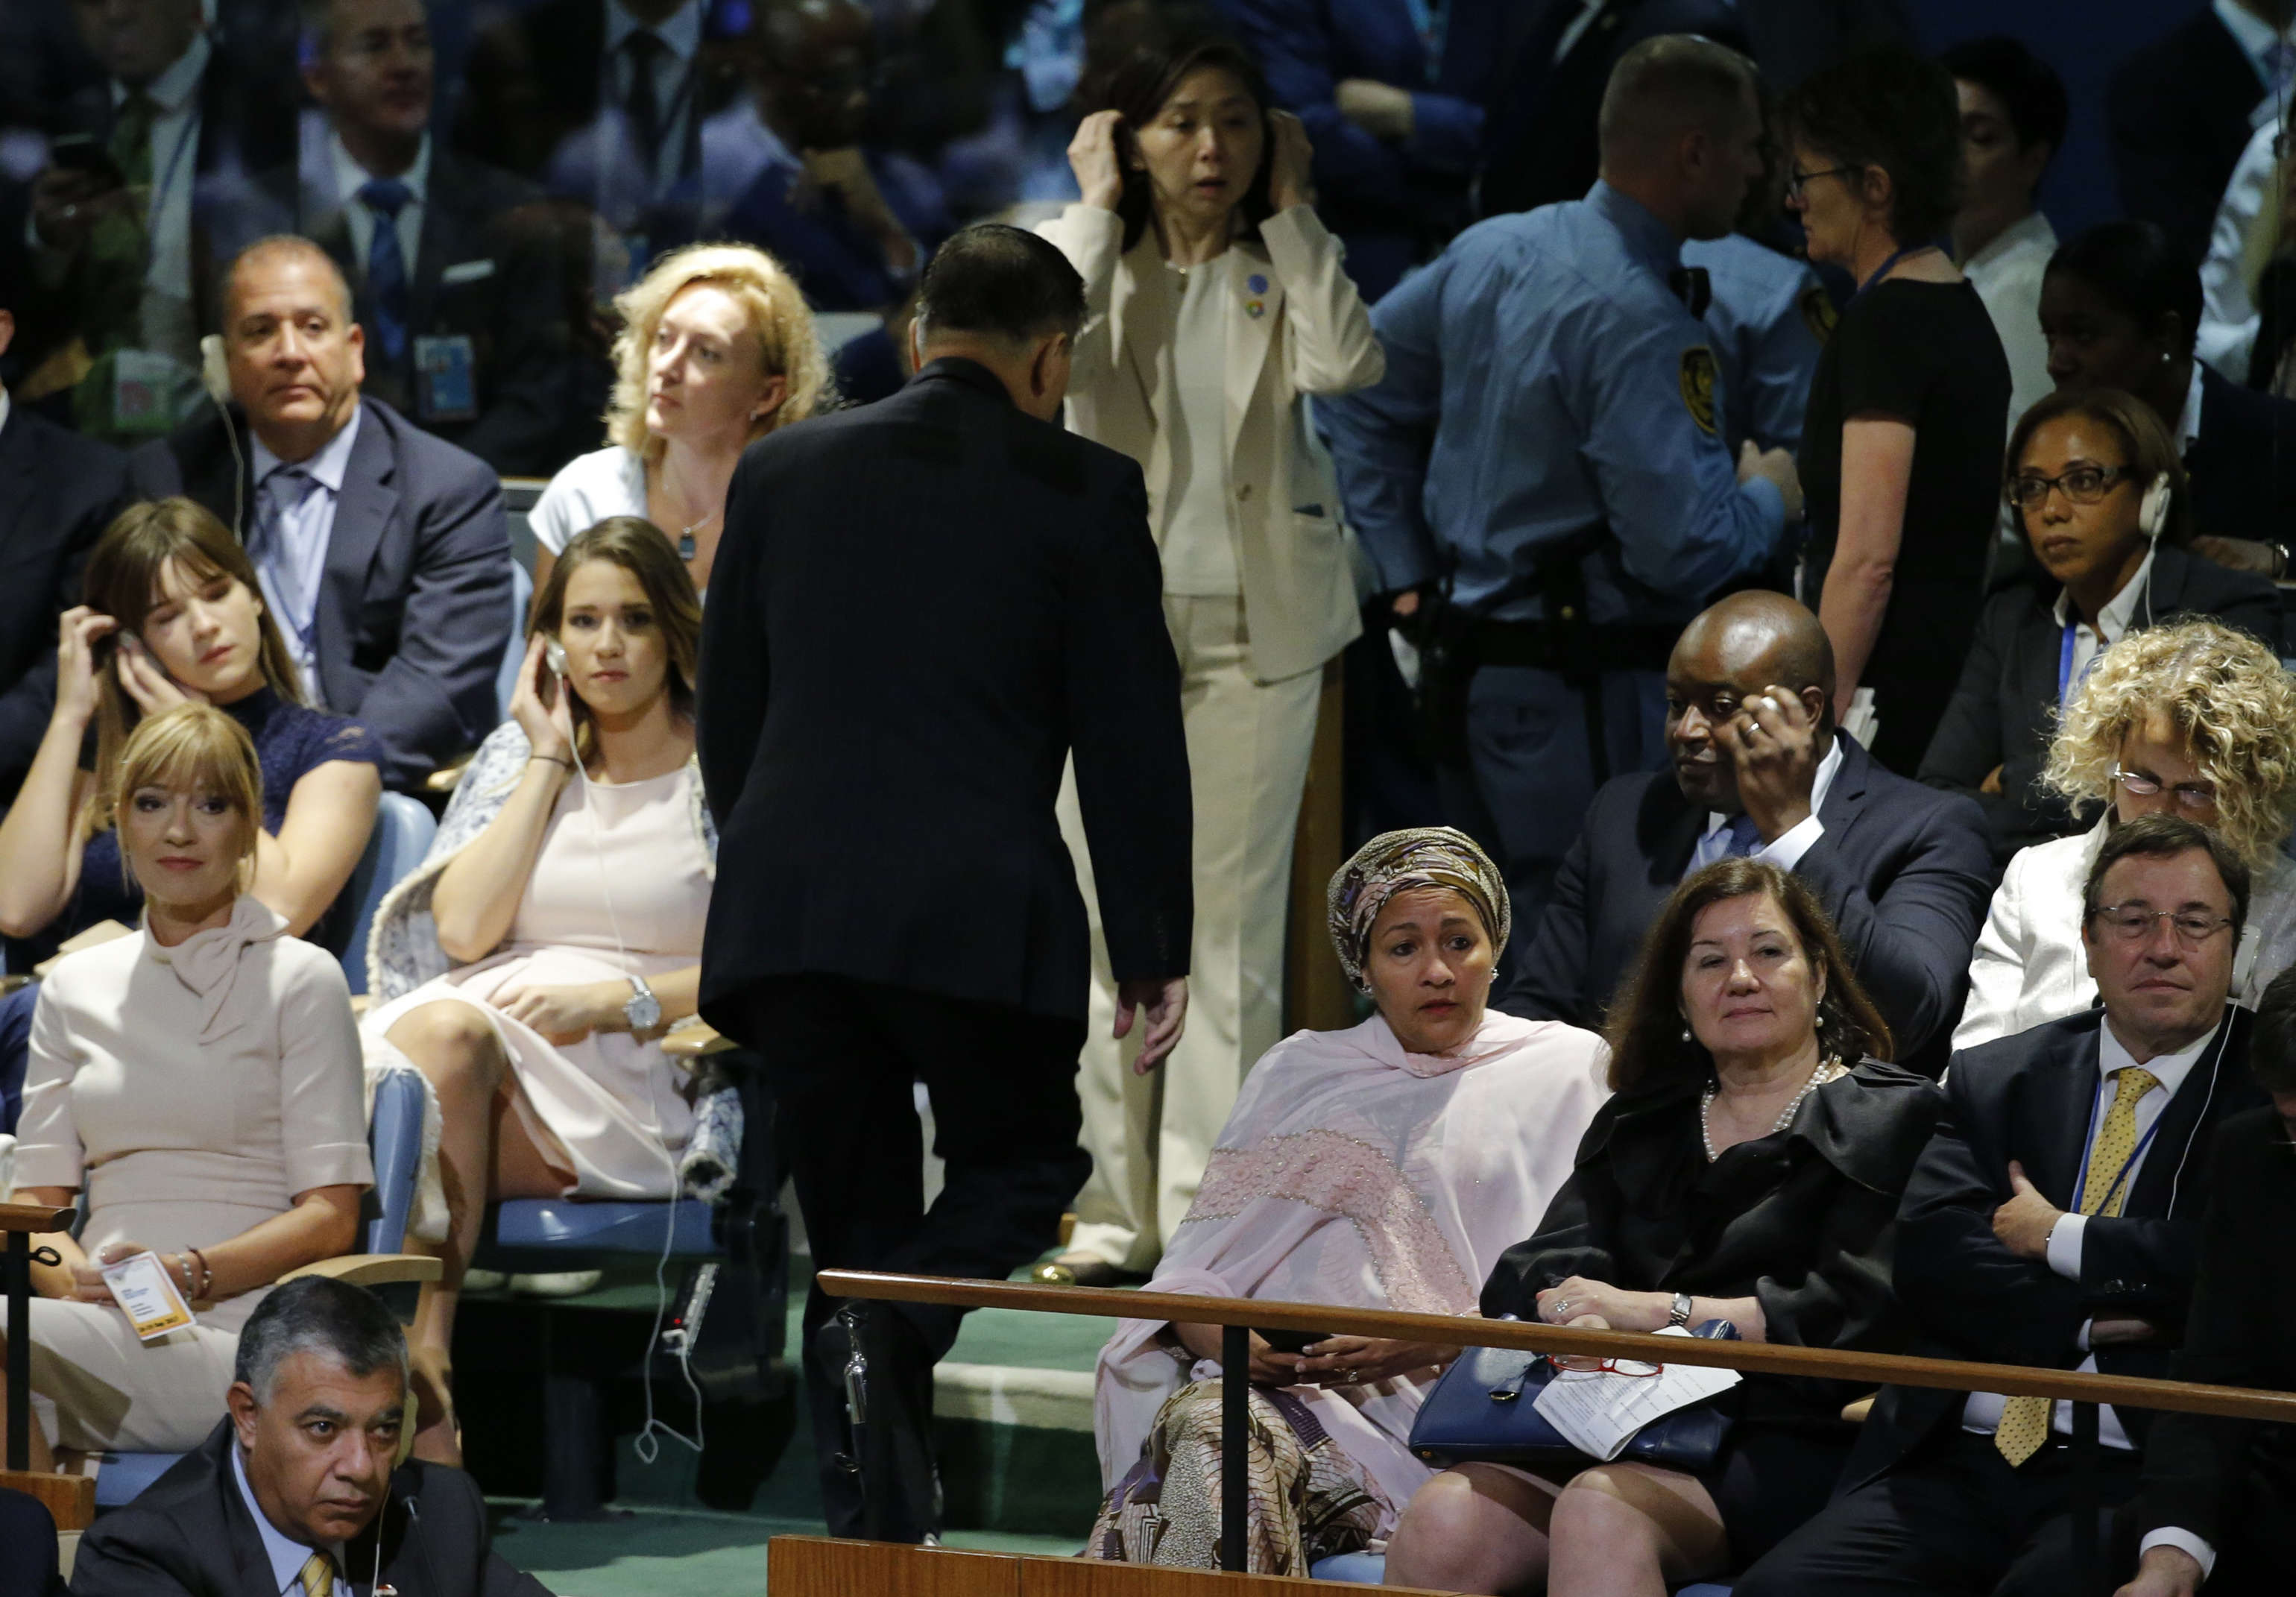 North Korea's Ambassador to the UN, Ja Song Nam, leaves his seat prior to the arrival of US President Donald Trump to address the 72nd United Nations General Assembly at UN Headquarters in New York, US, September 19, 2017. (Reuters)